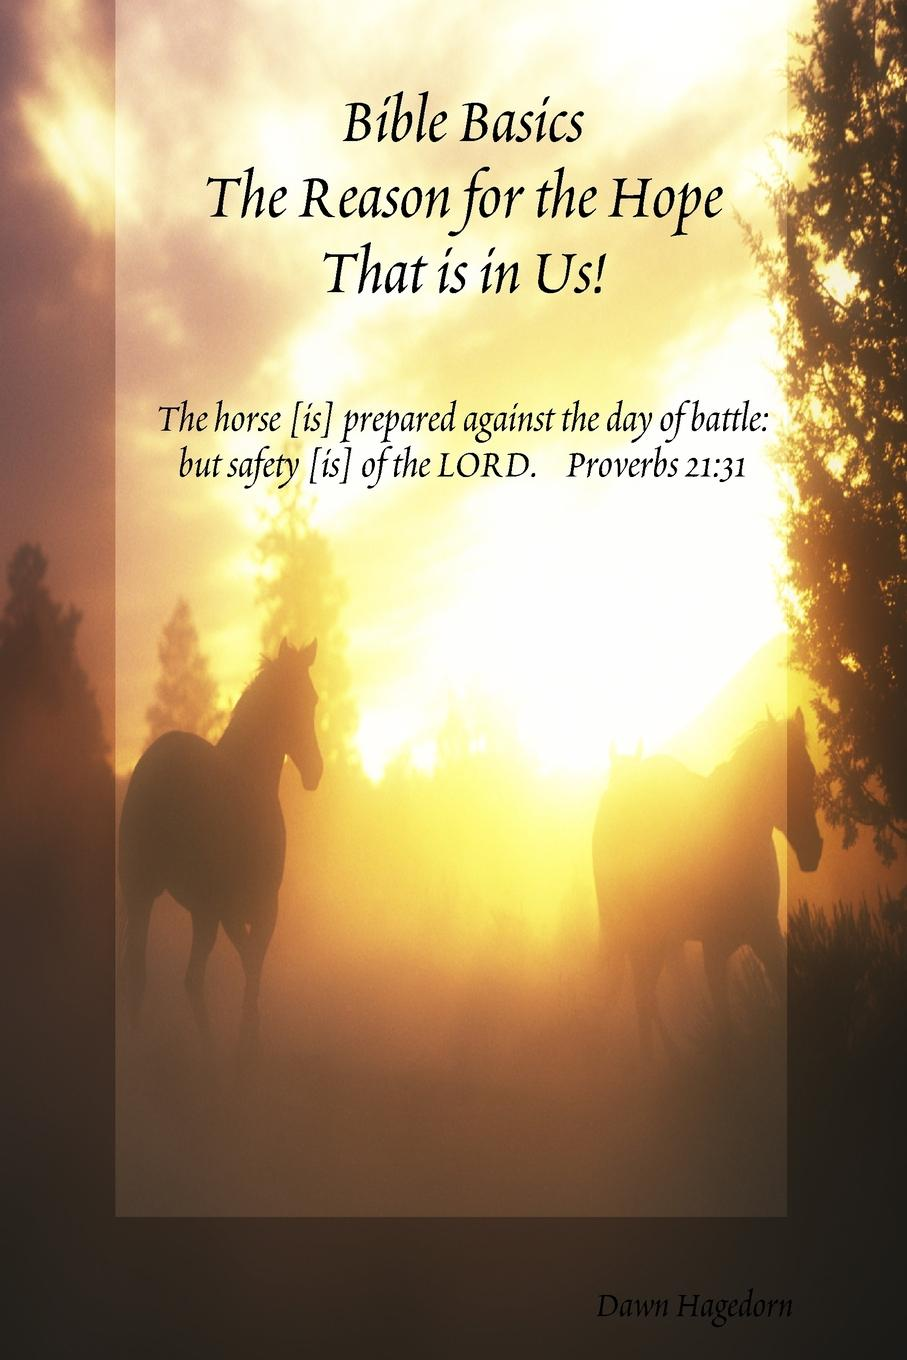 Dawn Hagedorn Bible Basics - The Reason for the Hope That is in Us. dawn atkins simply sex